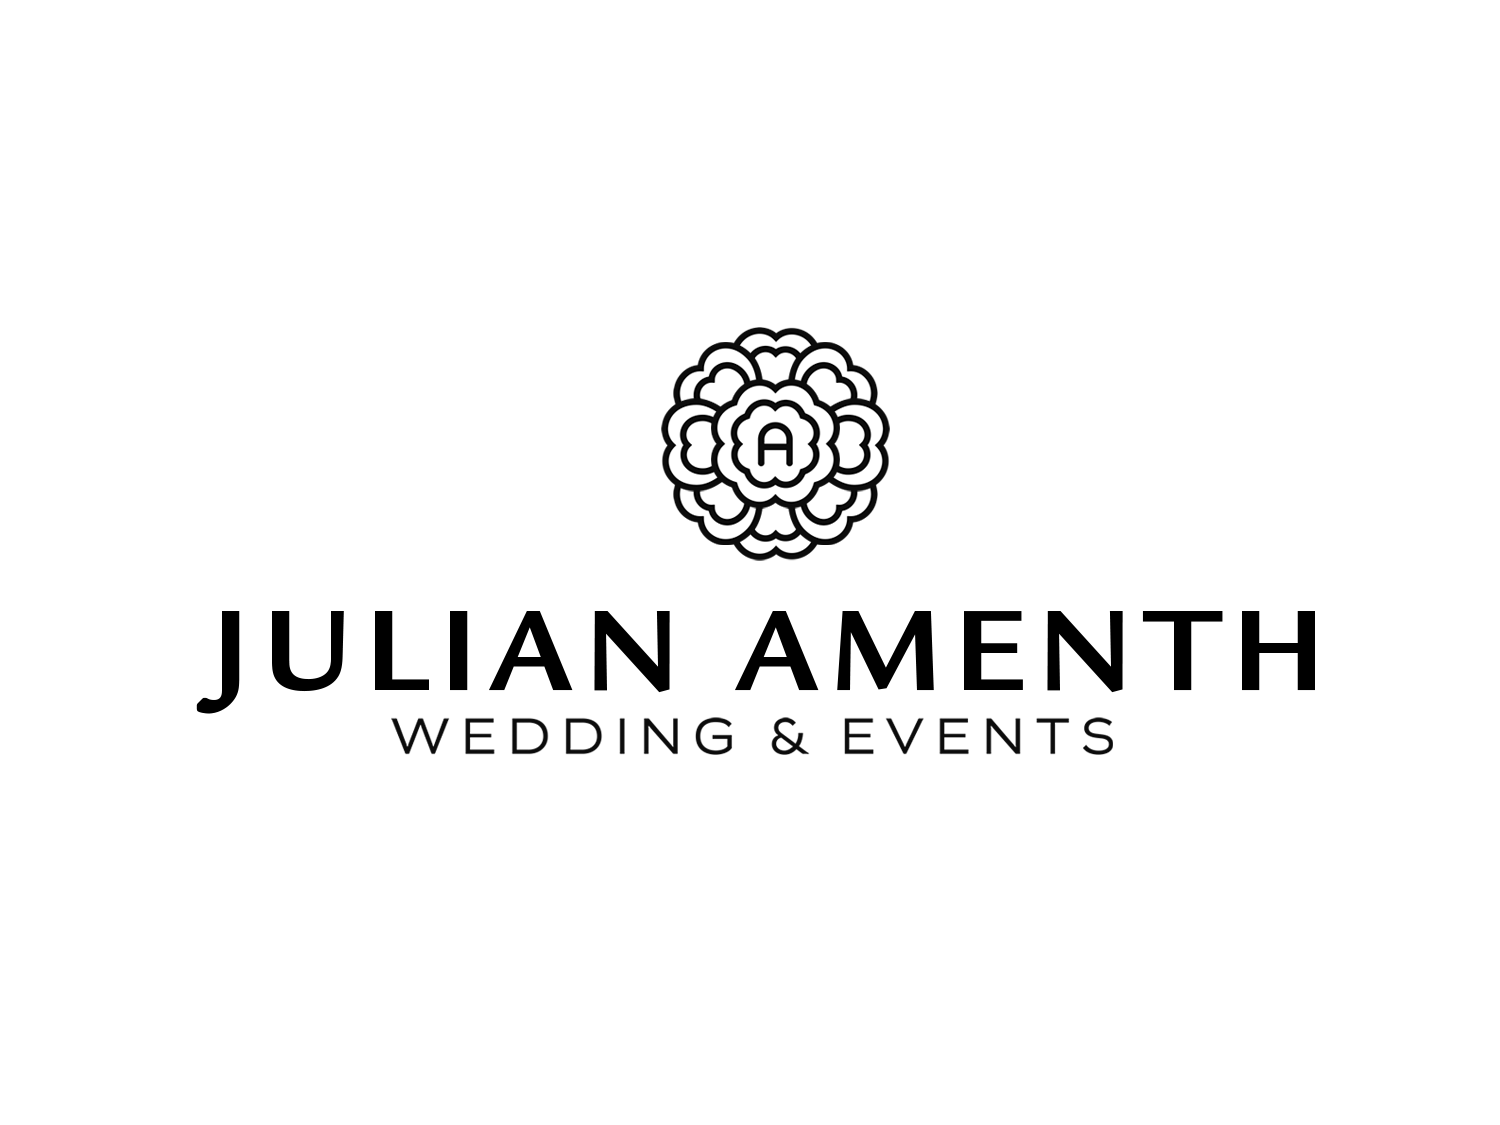 Julian Amenth – Concept to Reality